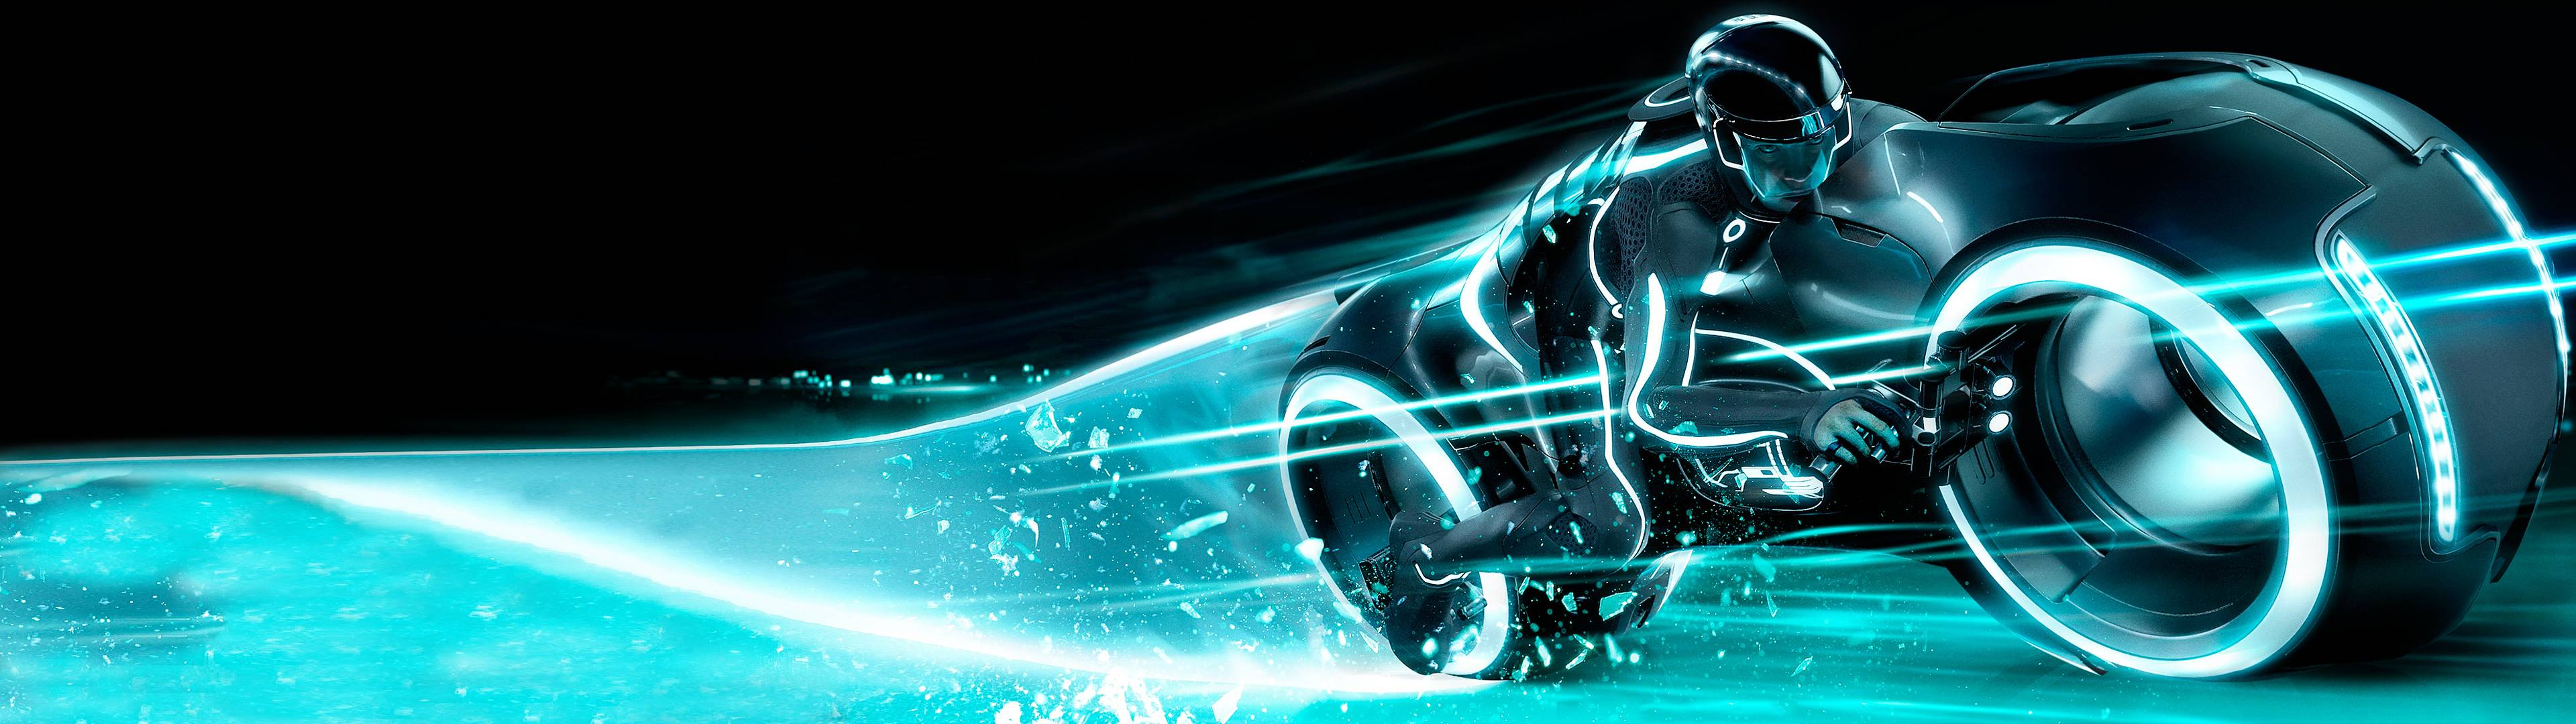 Tron Light Cycle Wallpapers Group (79+)